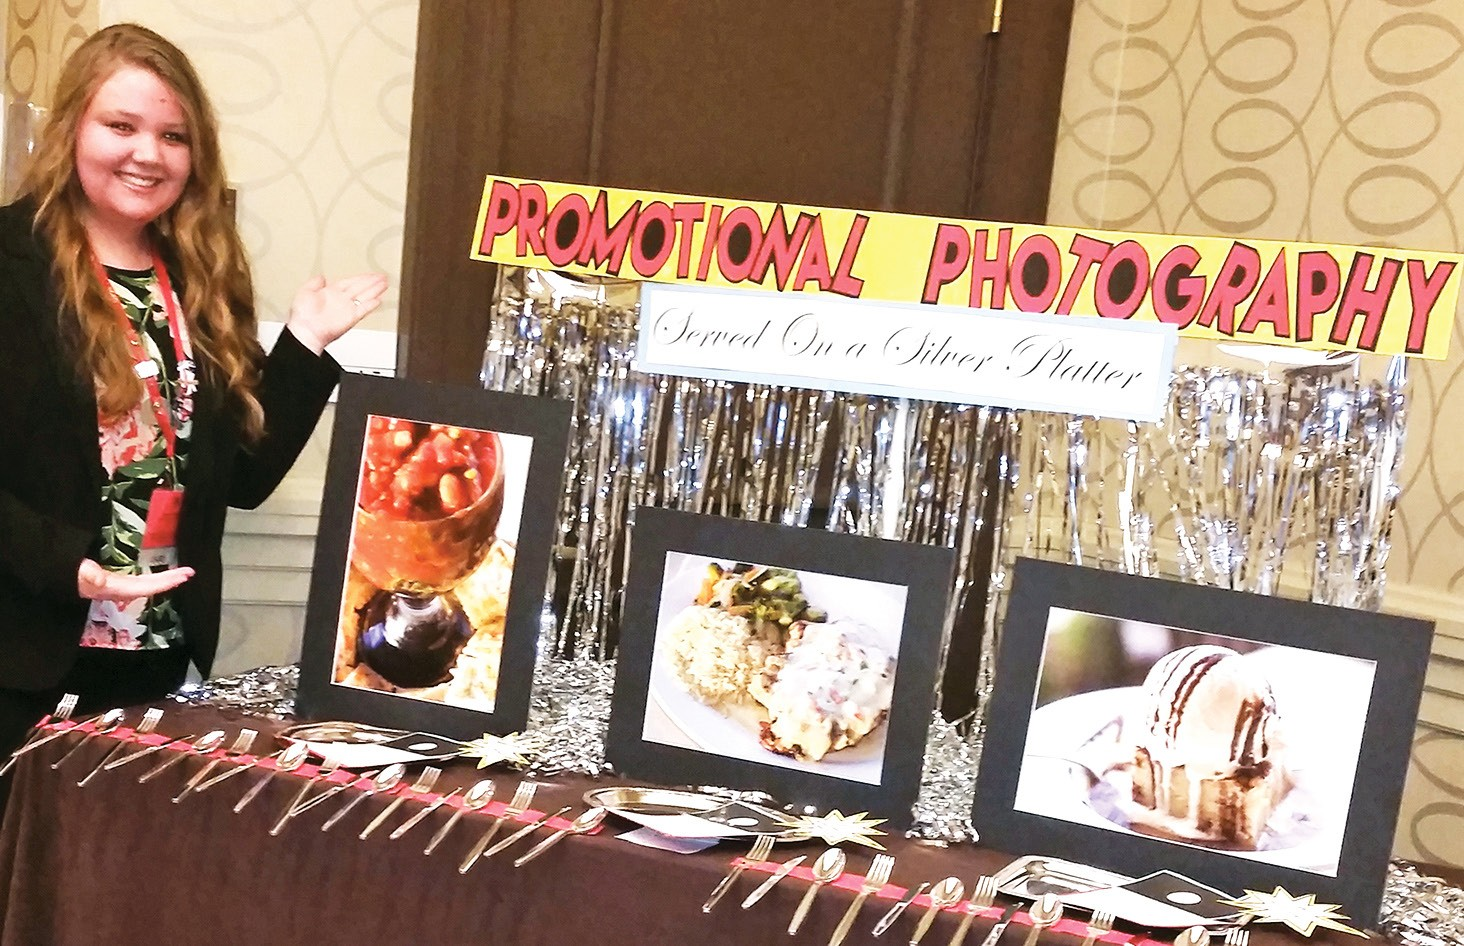 Alyssa Dickson showcases her photography skills, placing 2nd in Promotional Photography at the National Leadership Conference in Boston, Mass. (Photos were taken of food prepared by Lew's.)